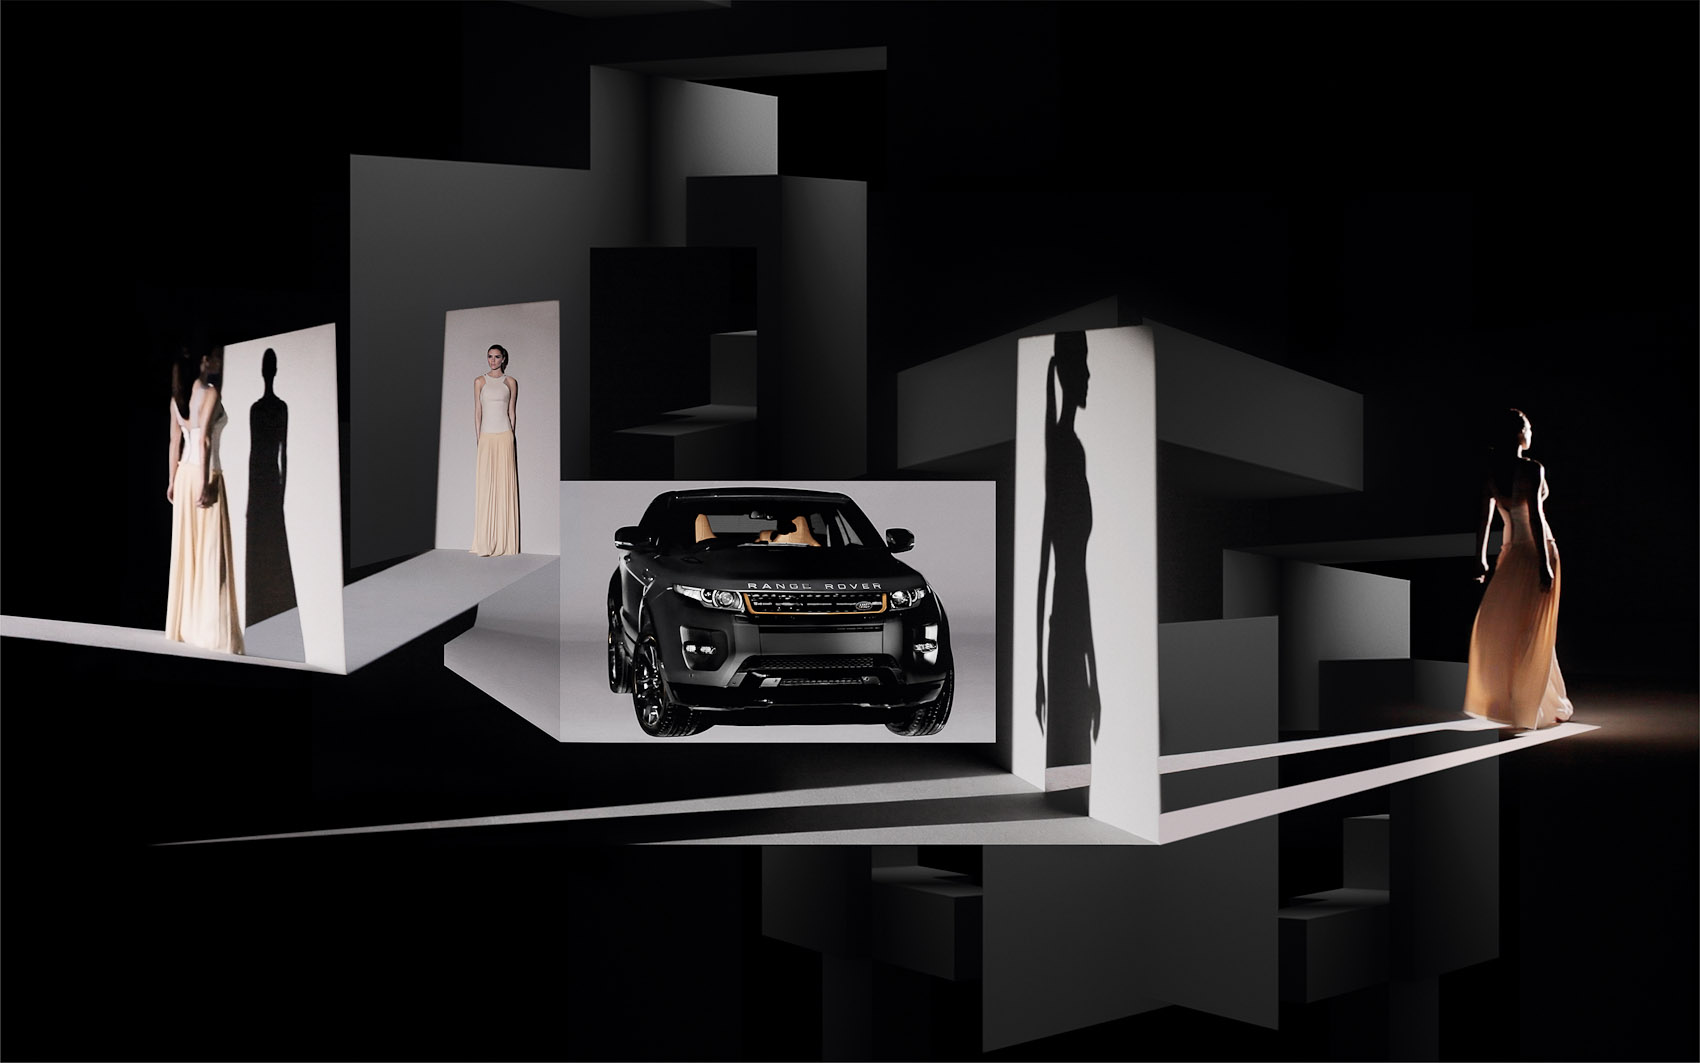 01_nick_knight_shoot_range_rover_evoque_se_with_victoria_beckham_03_rgb-2